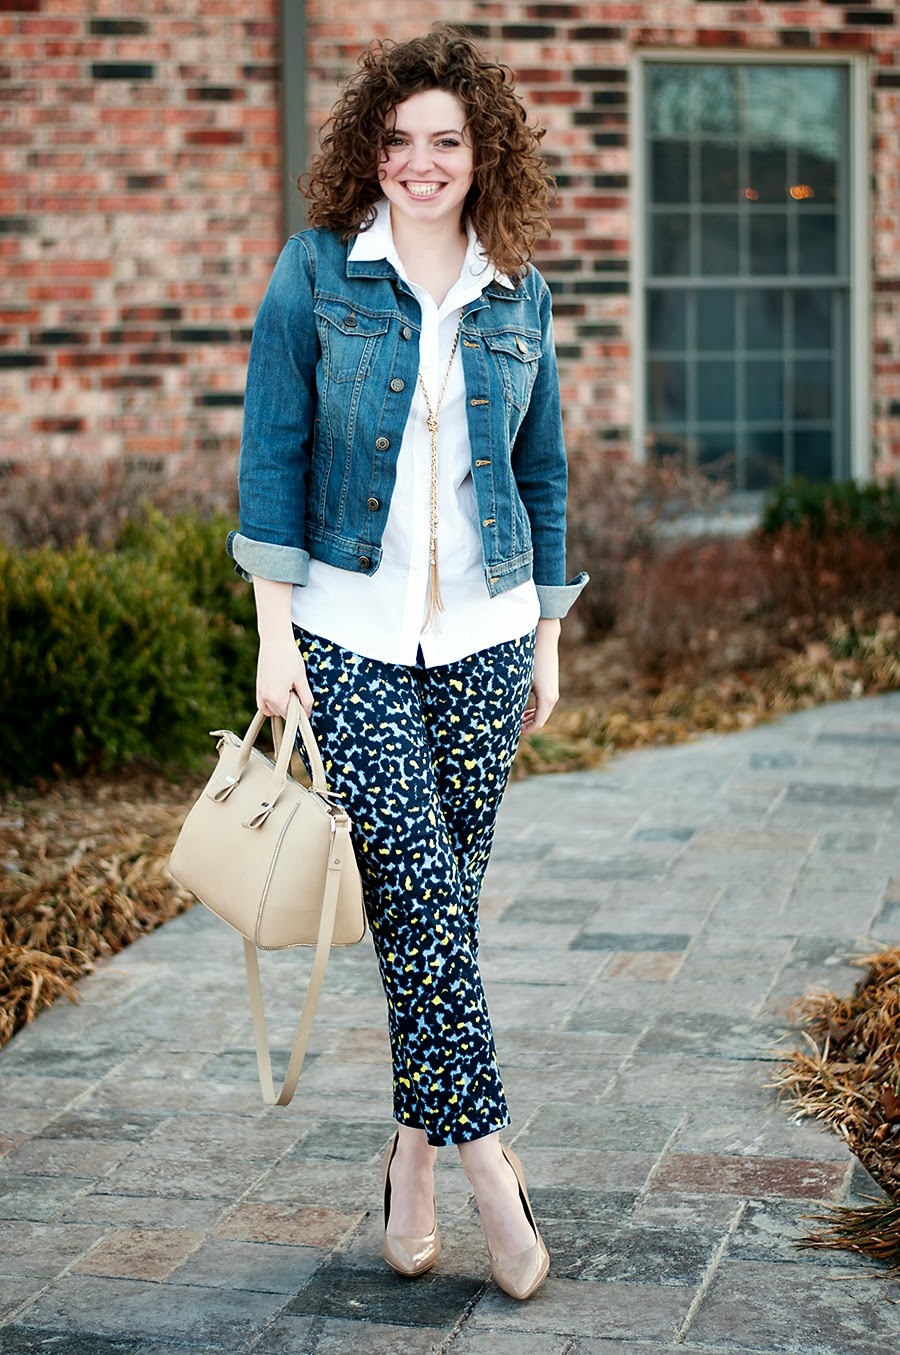 Denim jacket with animal print pants